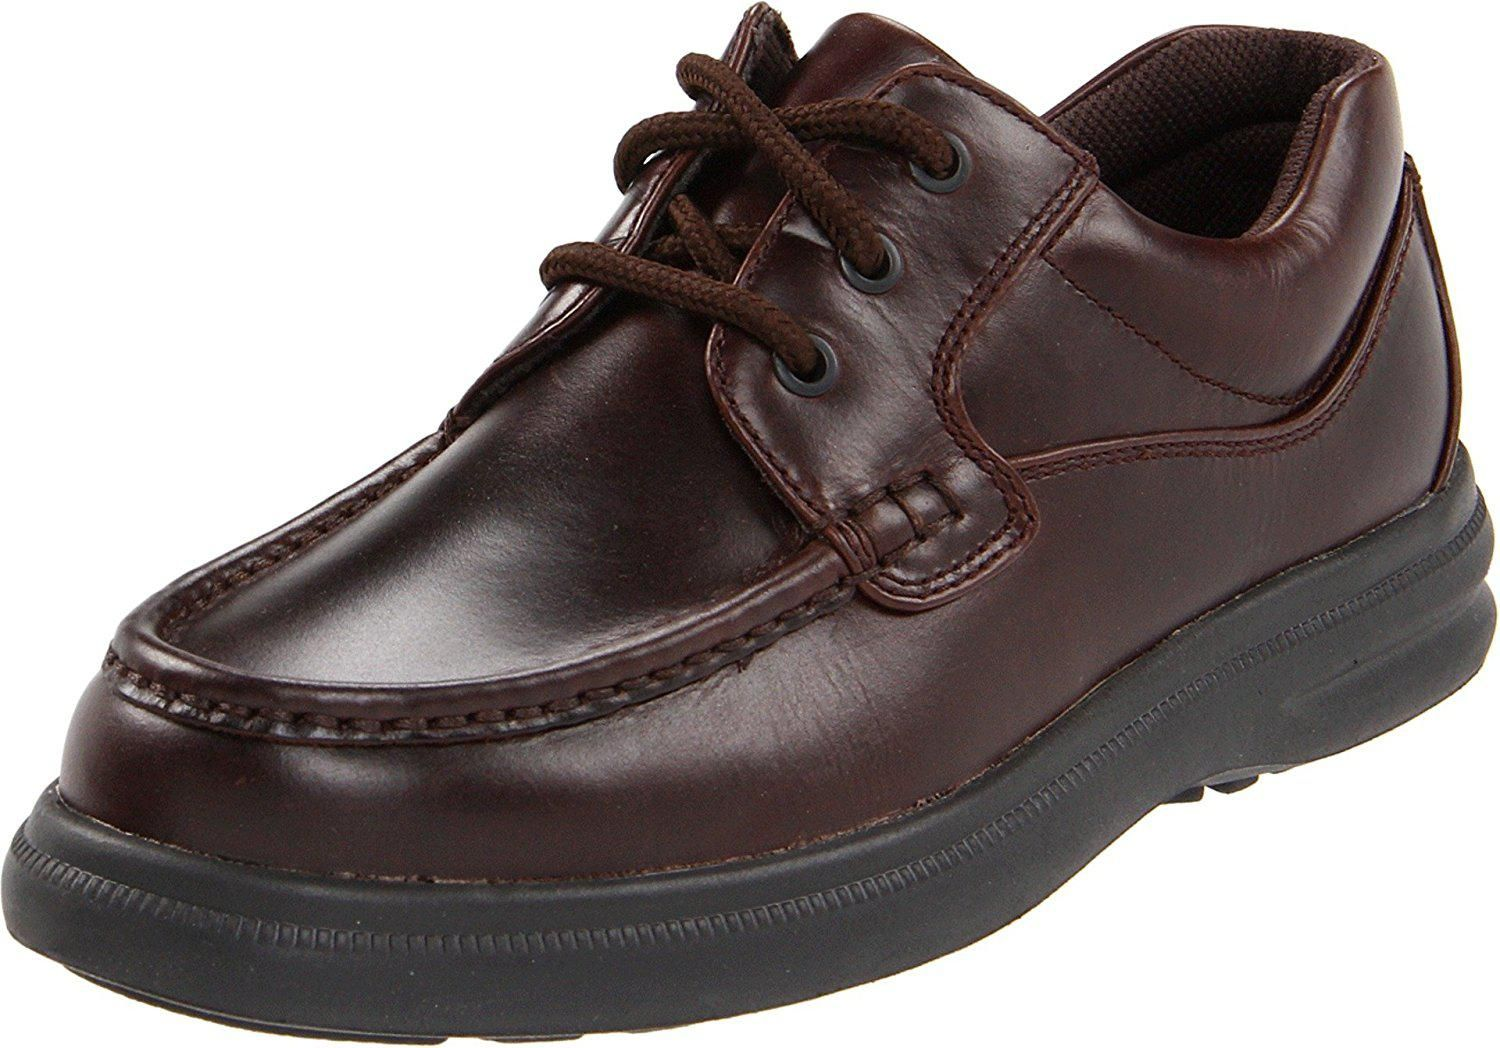 Hush Puppies Mens Gus Oxfordoxfords This Is An Amazon Affiliate Link Click Image For Detail Leather Imported Syntheticsole Shaftmeasuresapproximately